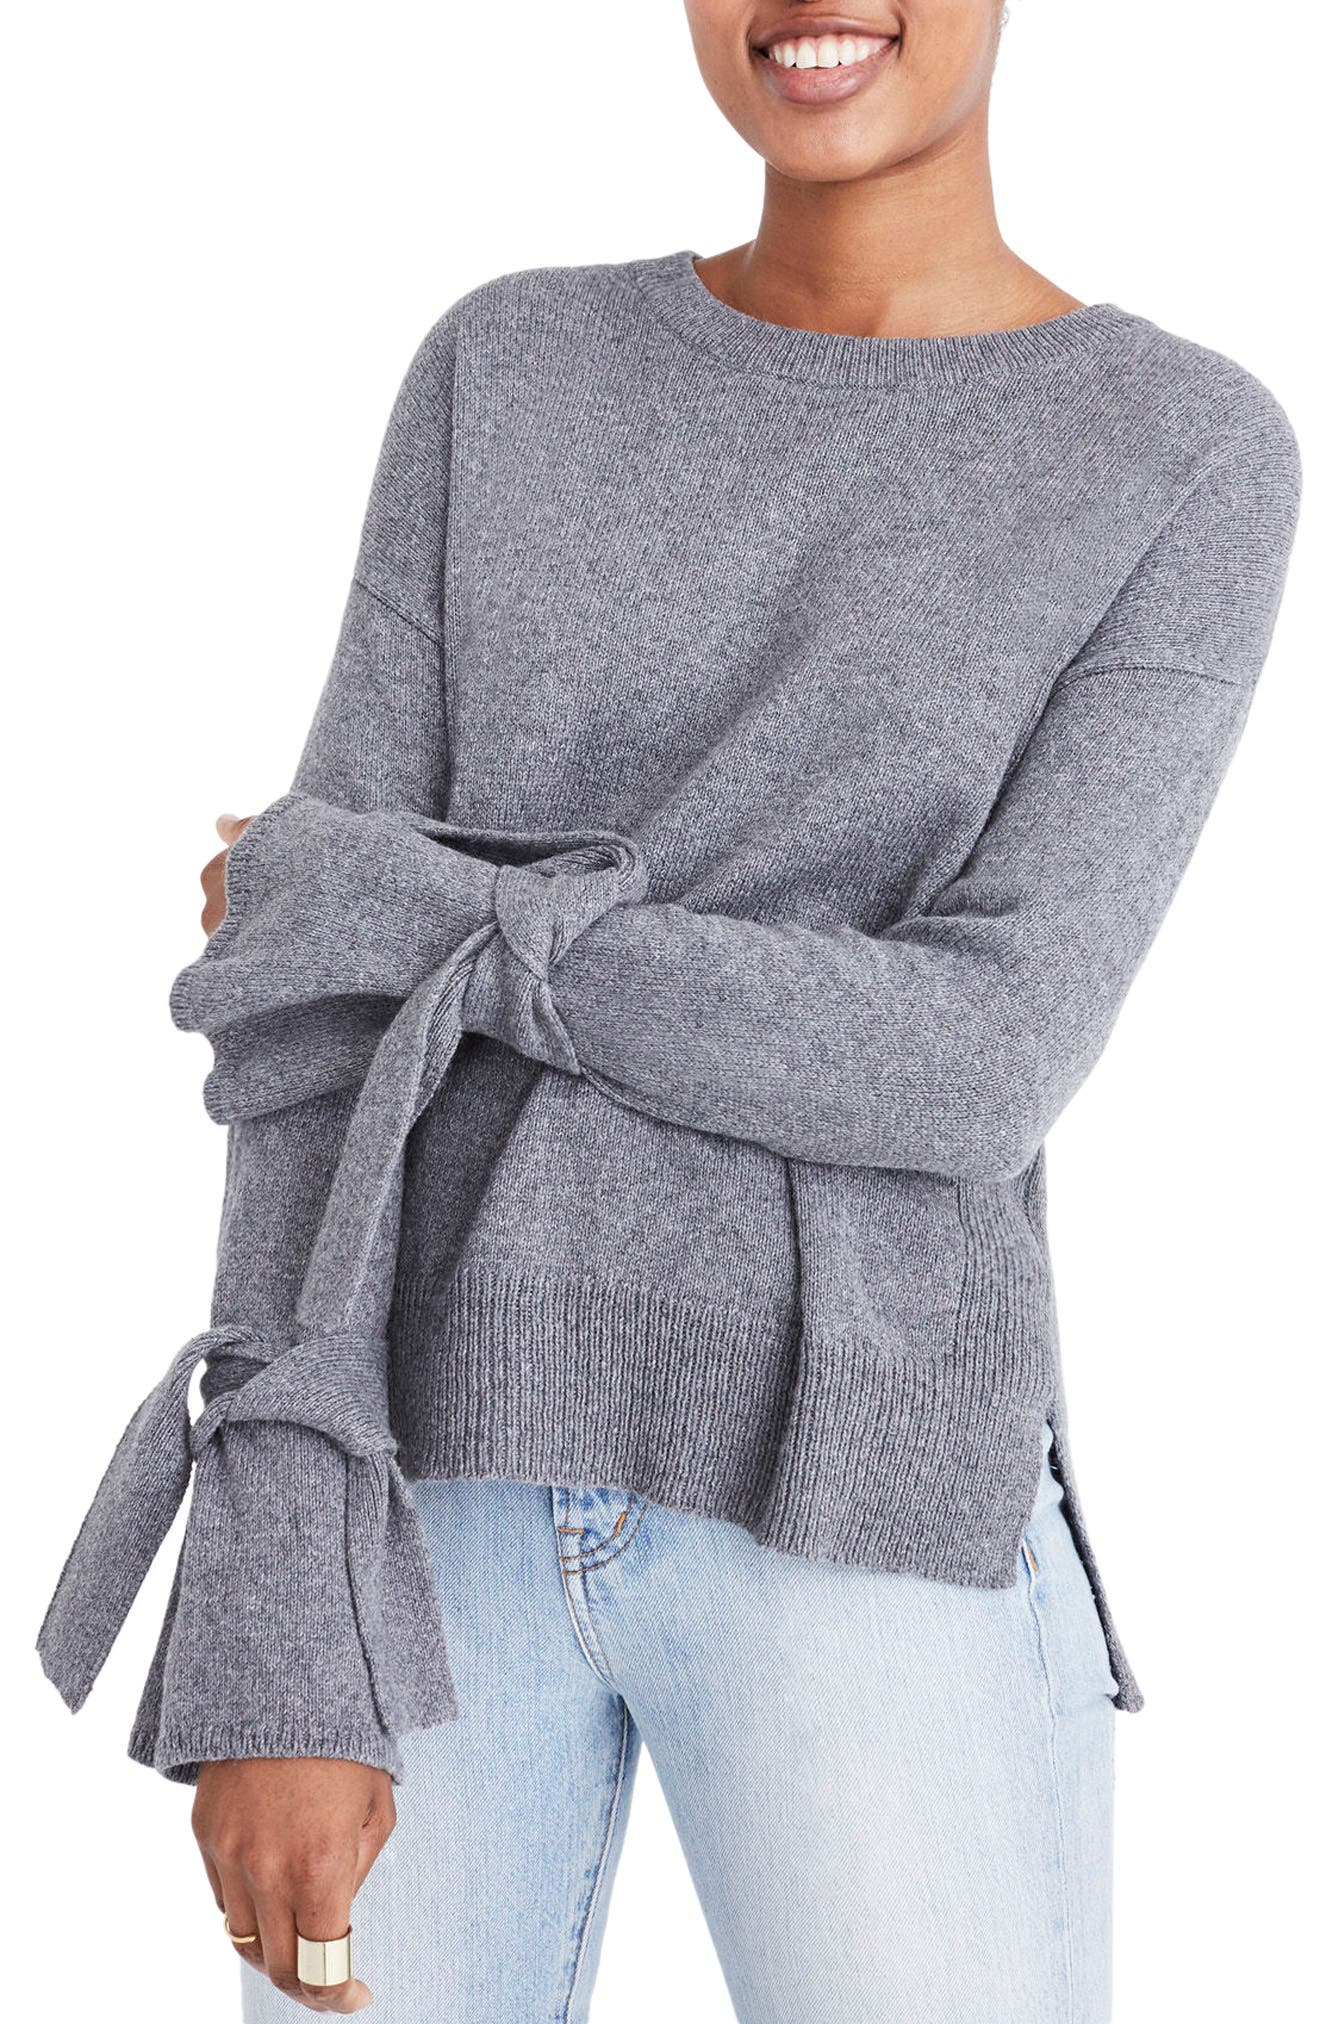 Alternate Image 1 Selected - Madewell Tie Cuff Pullover Sweater